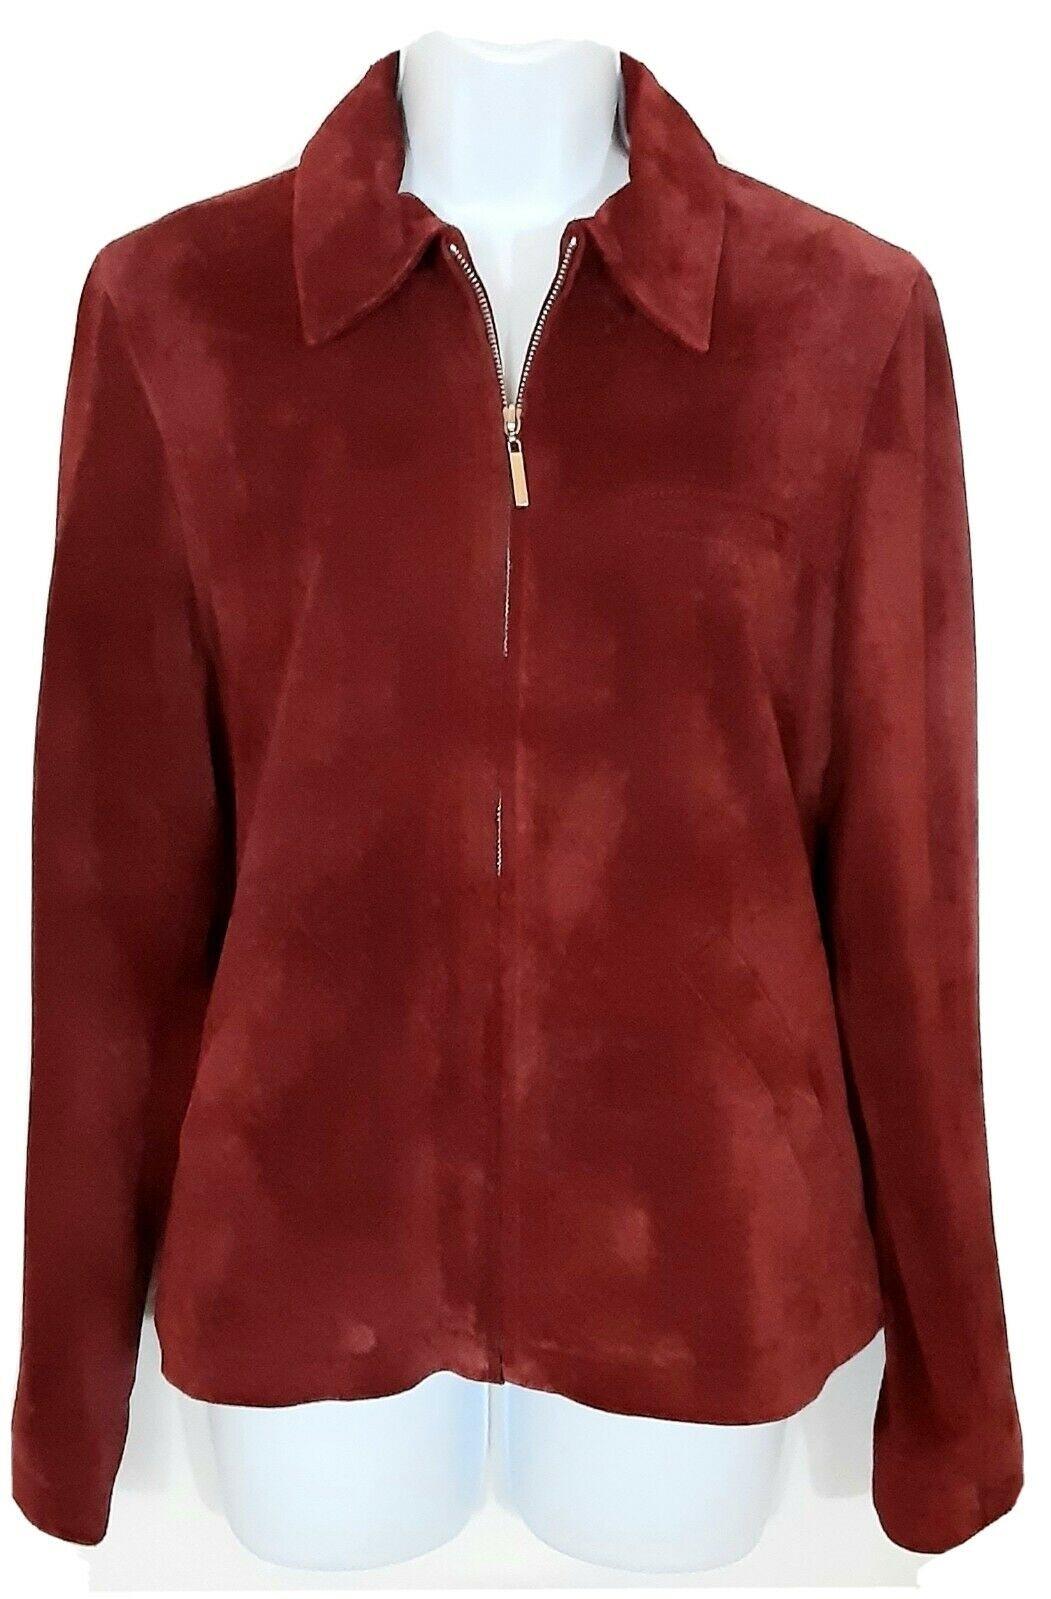 Atelier by B. Thomas Suede Jacket Size S Cranberry Color Full Zip Front Lined